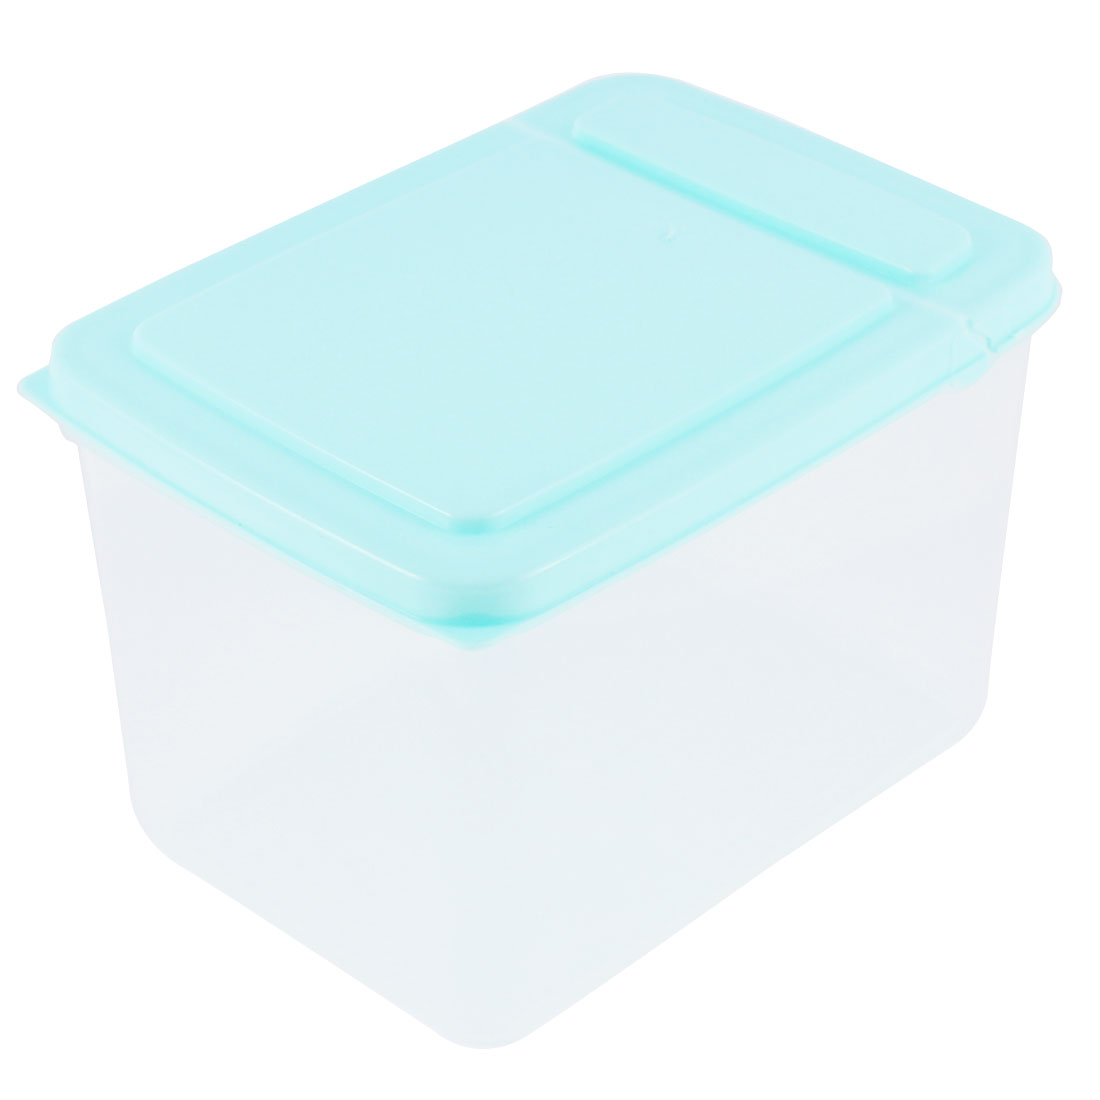 Home Plastic Food Storage Box Container Case 10cm Height 1.3L Blue